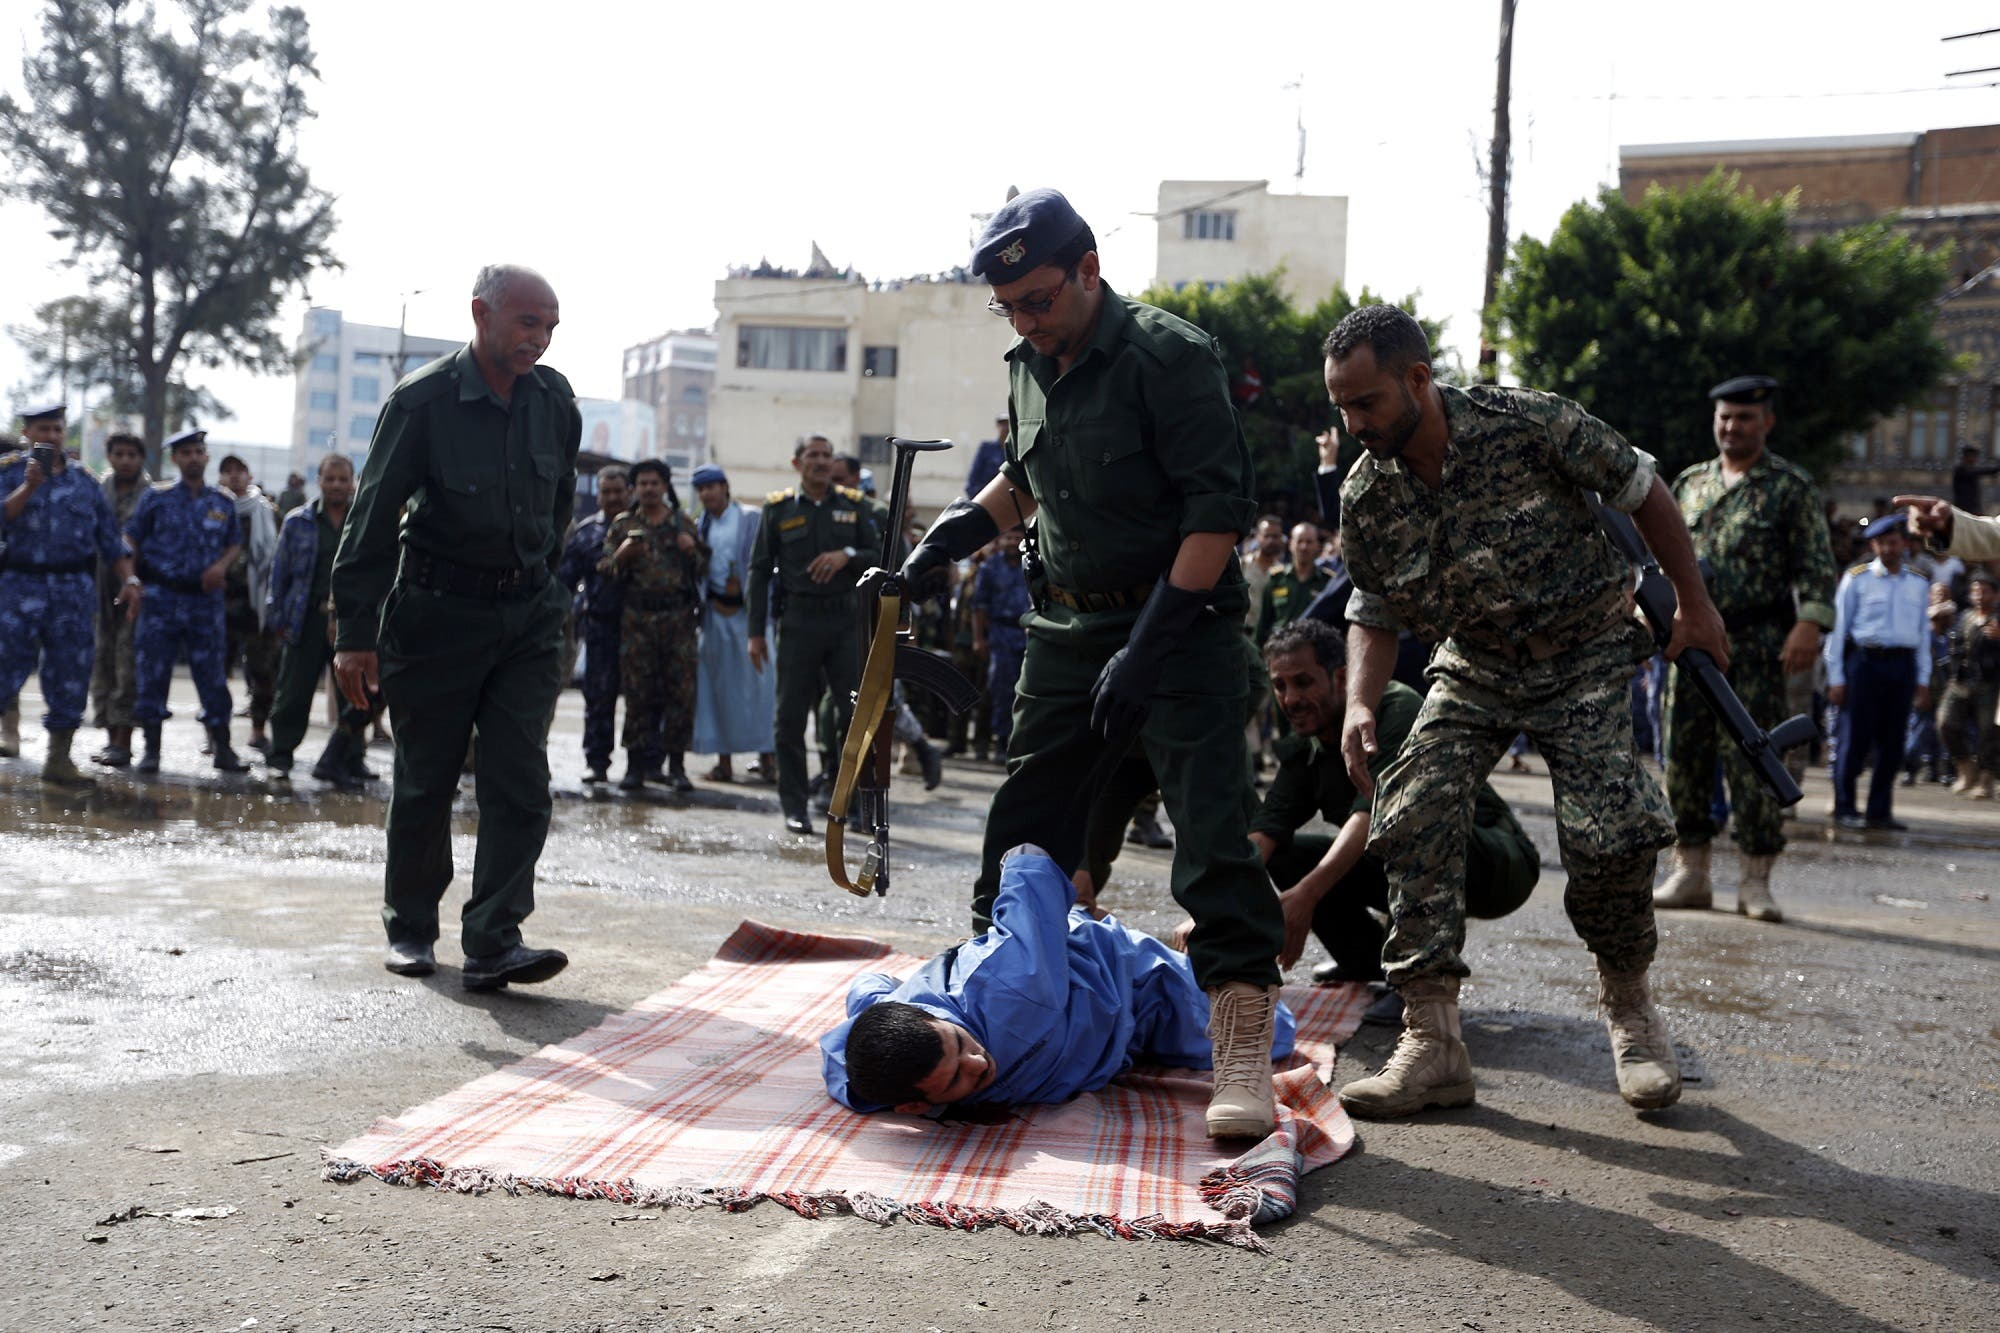 Yemeni security forces prepare to execute a man convicted of raping and murdering a four-year-old girl in the capital Sanaa's Tahrir Square, on August 14, 2017. (AFP)